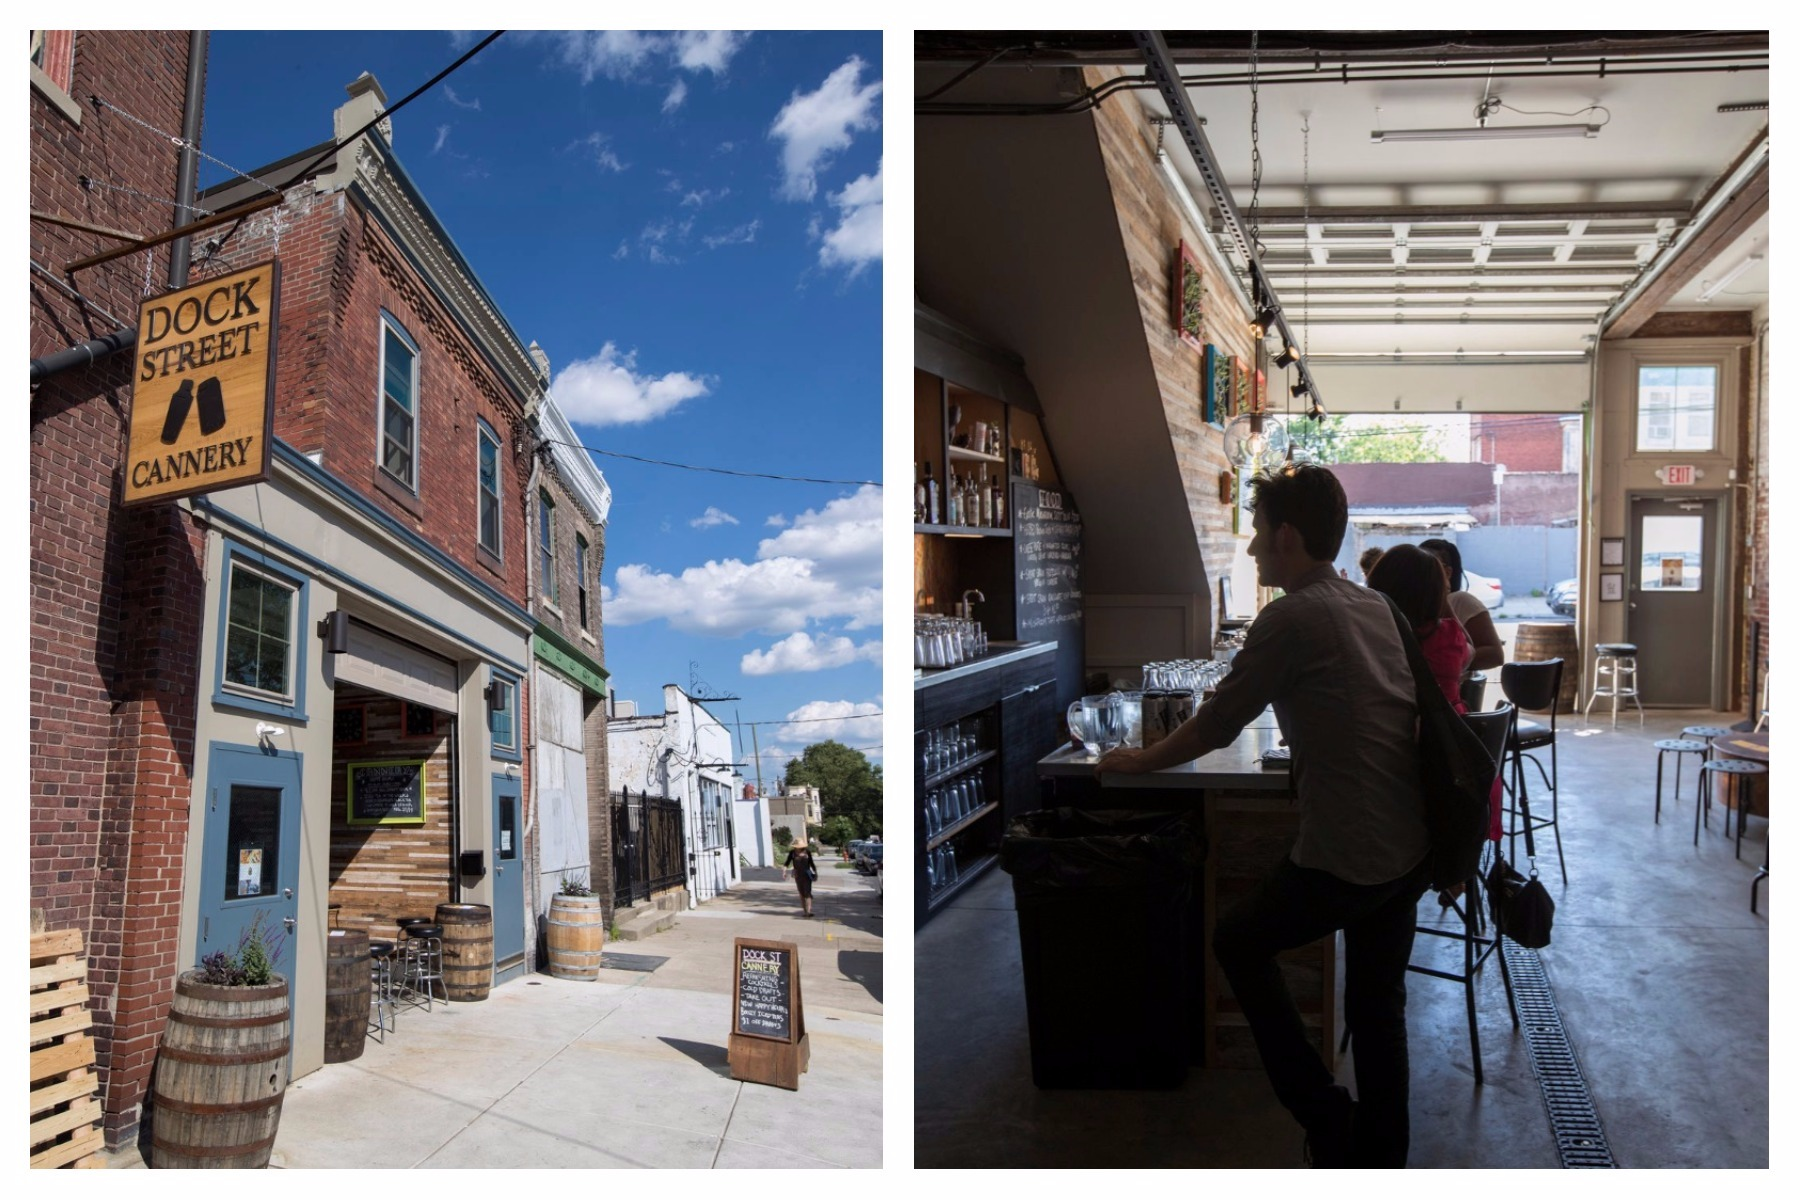 Exterior and interior views of Dock Street Cannery